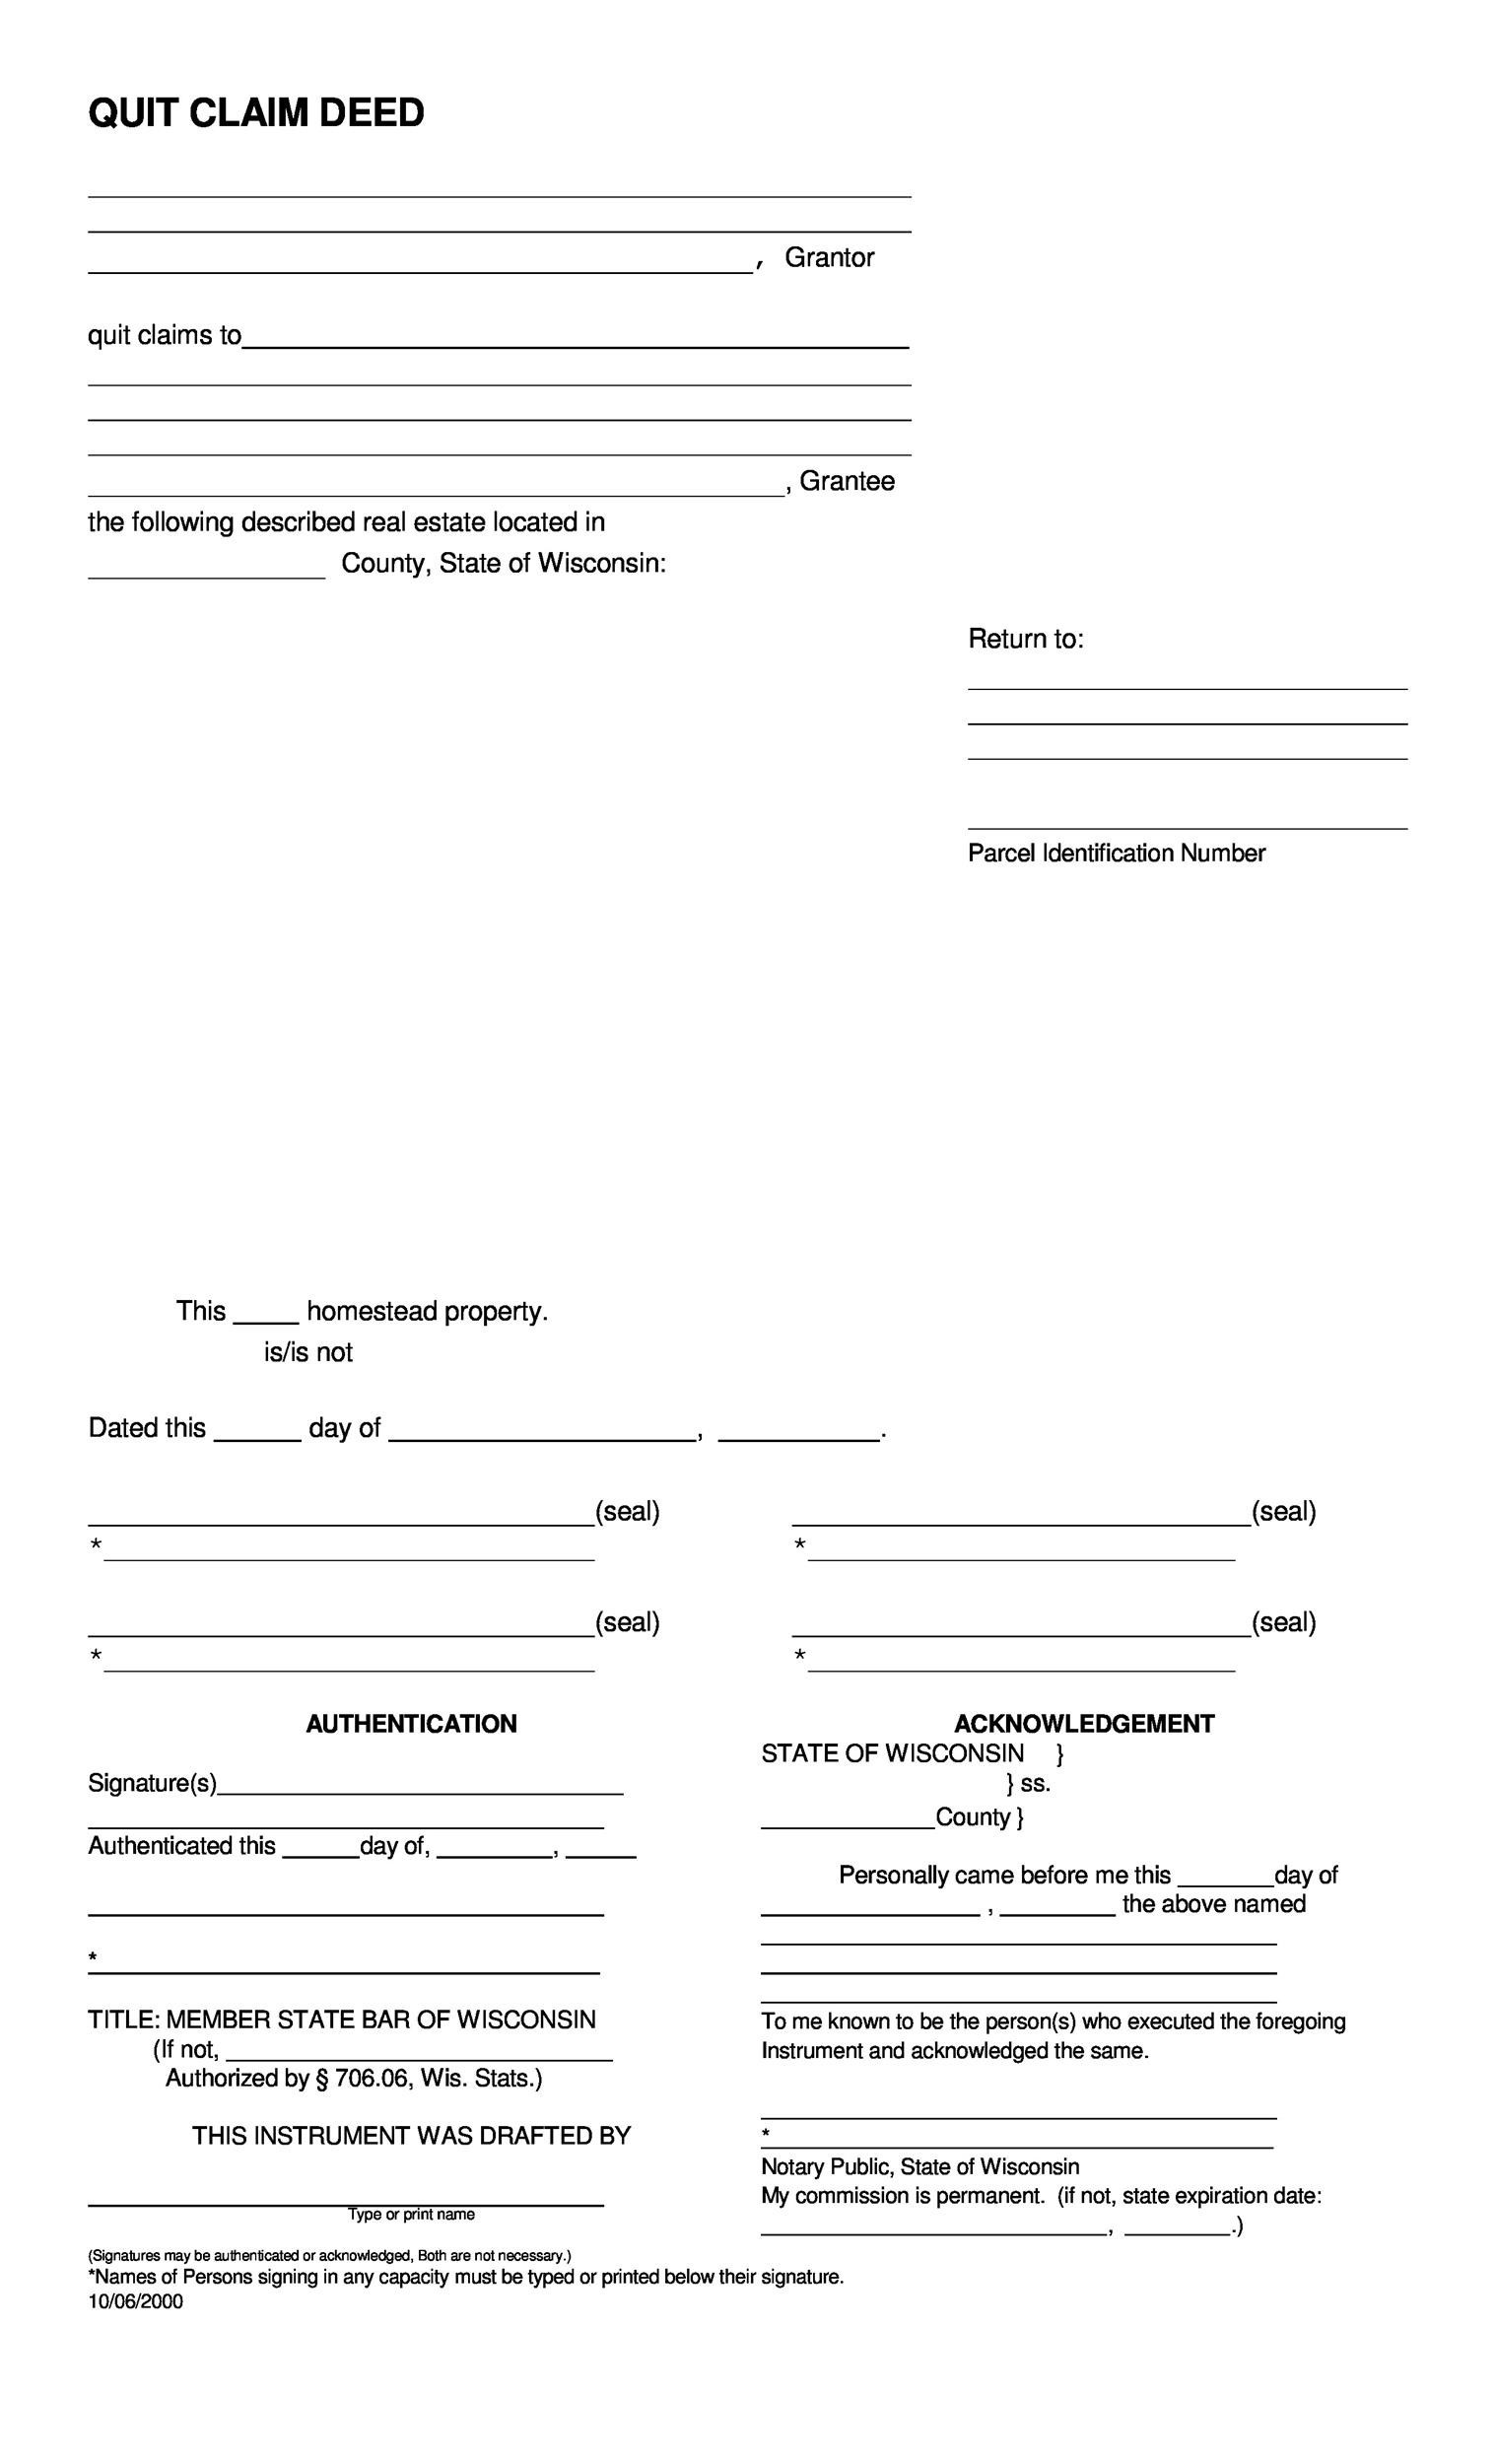 Free Quit Claim Deed Template 39